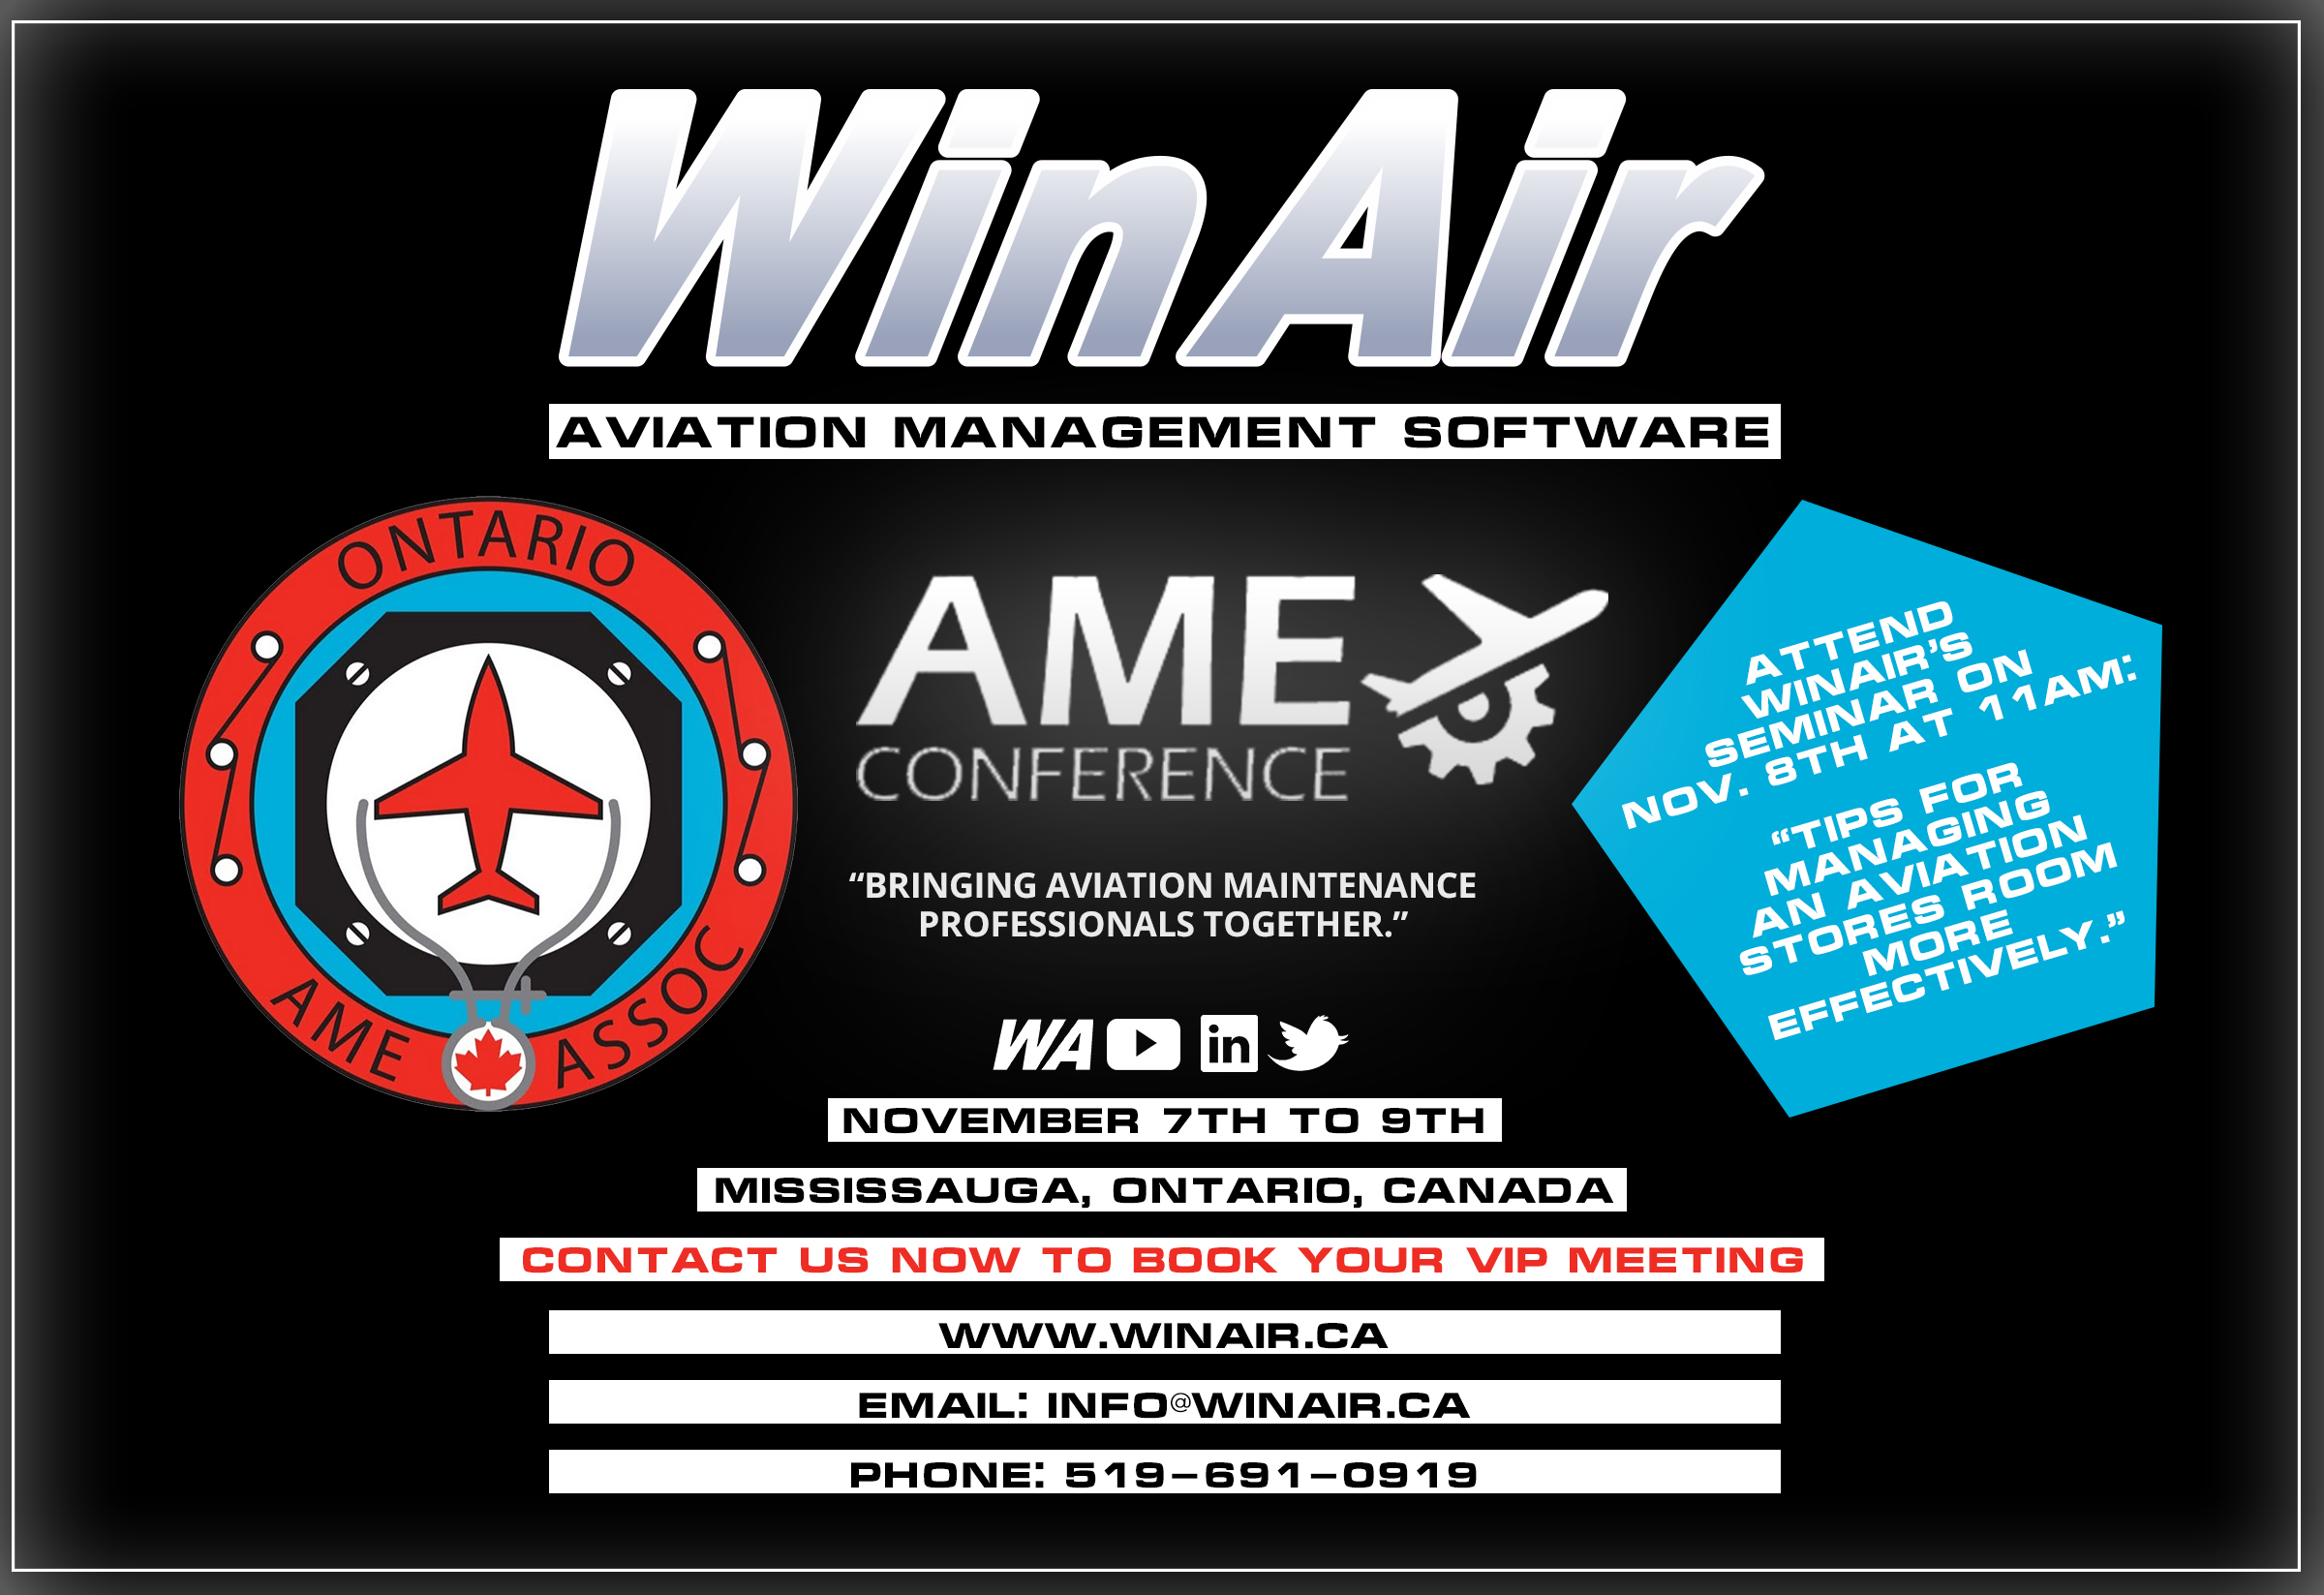 WinAir - Aviation Management Software - Ontario AME Conference - Promotional Image